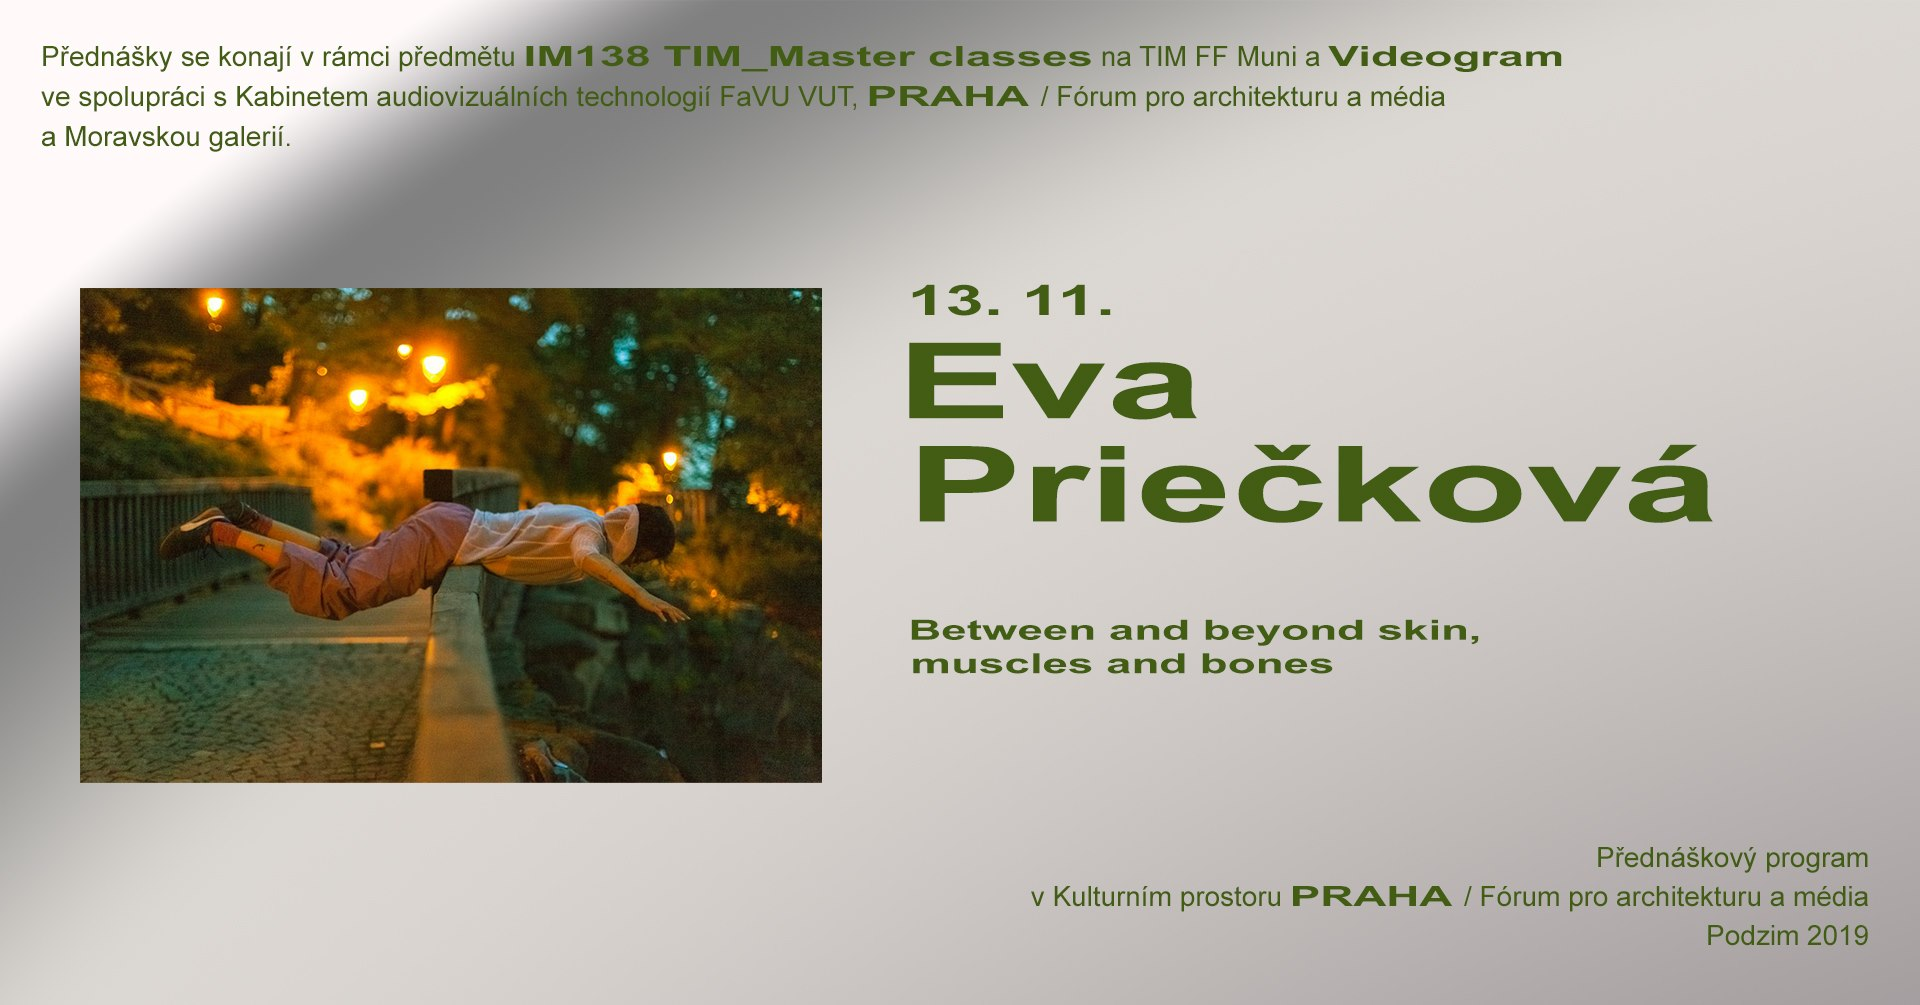 ST / 13.11. / 19.00 / TIM Master class / Videogram 93: Eva Priečková – Body as landscape of unknown / projekce, diskuse